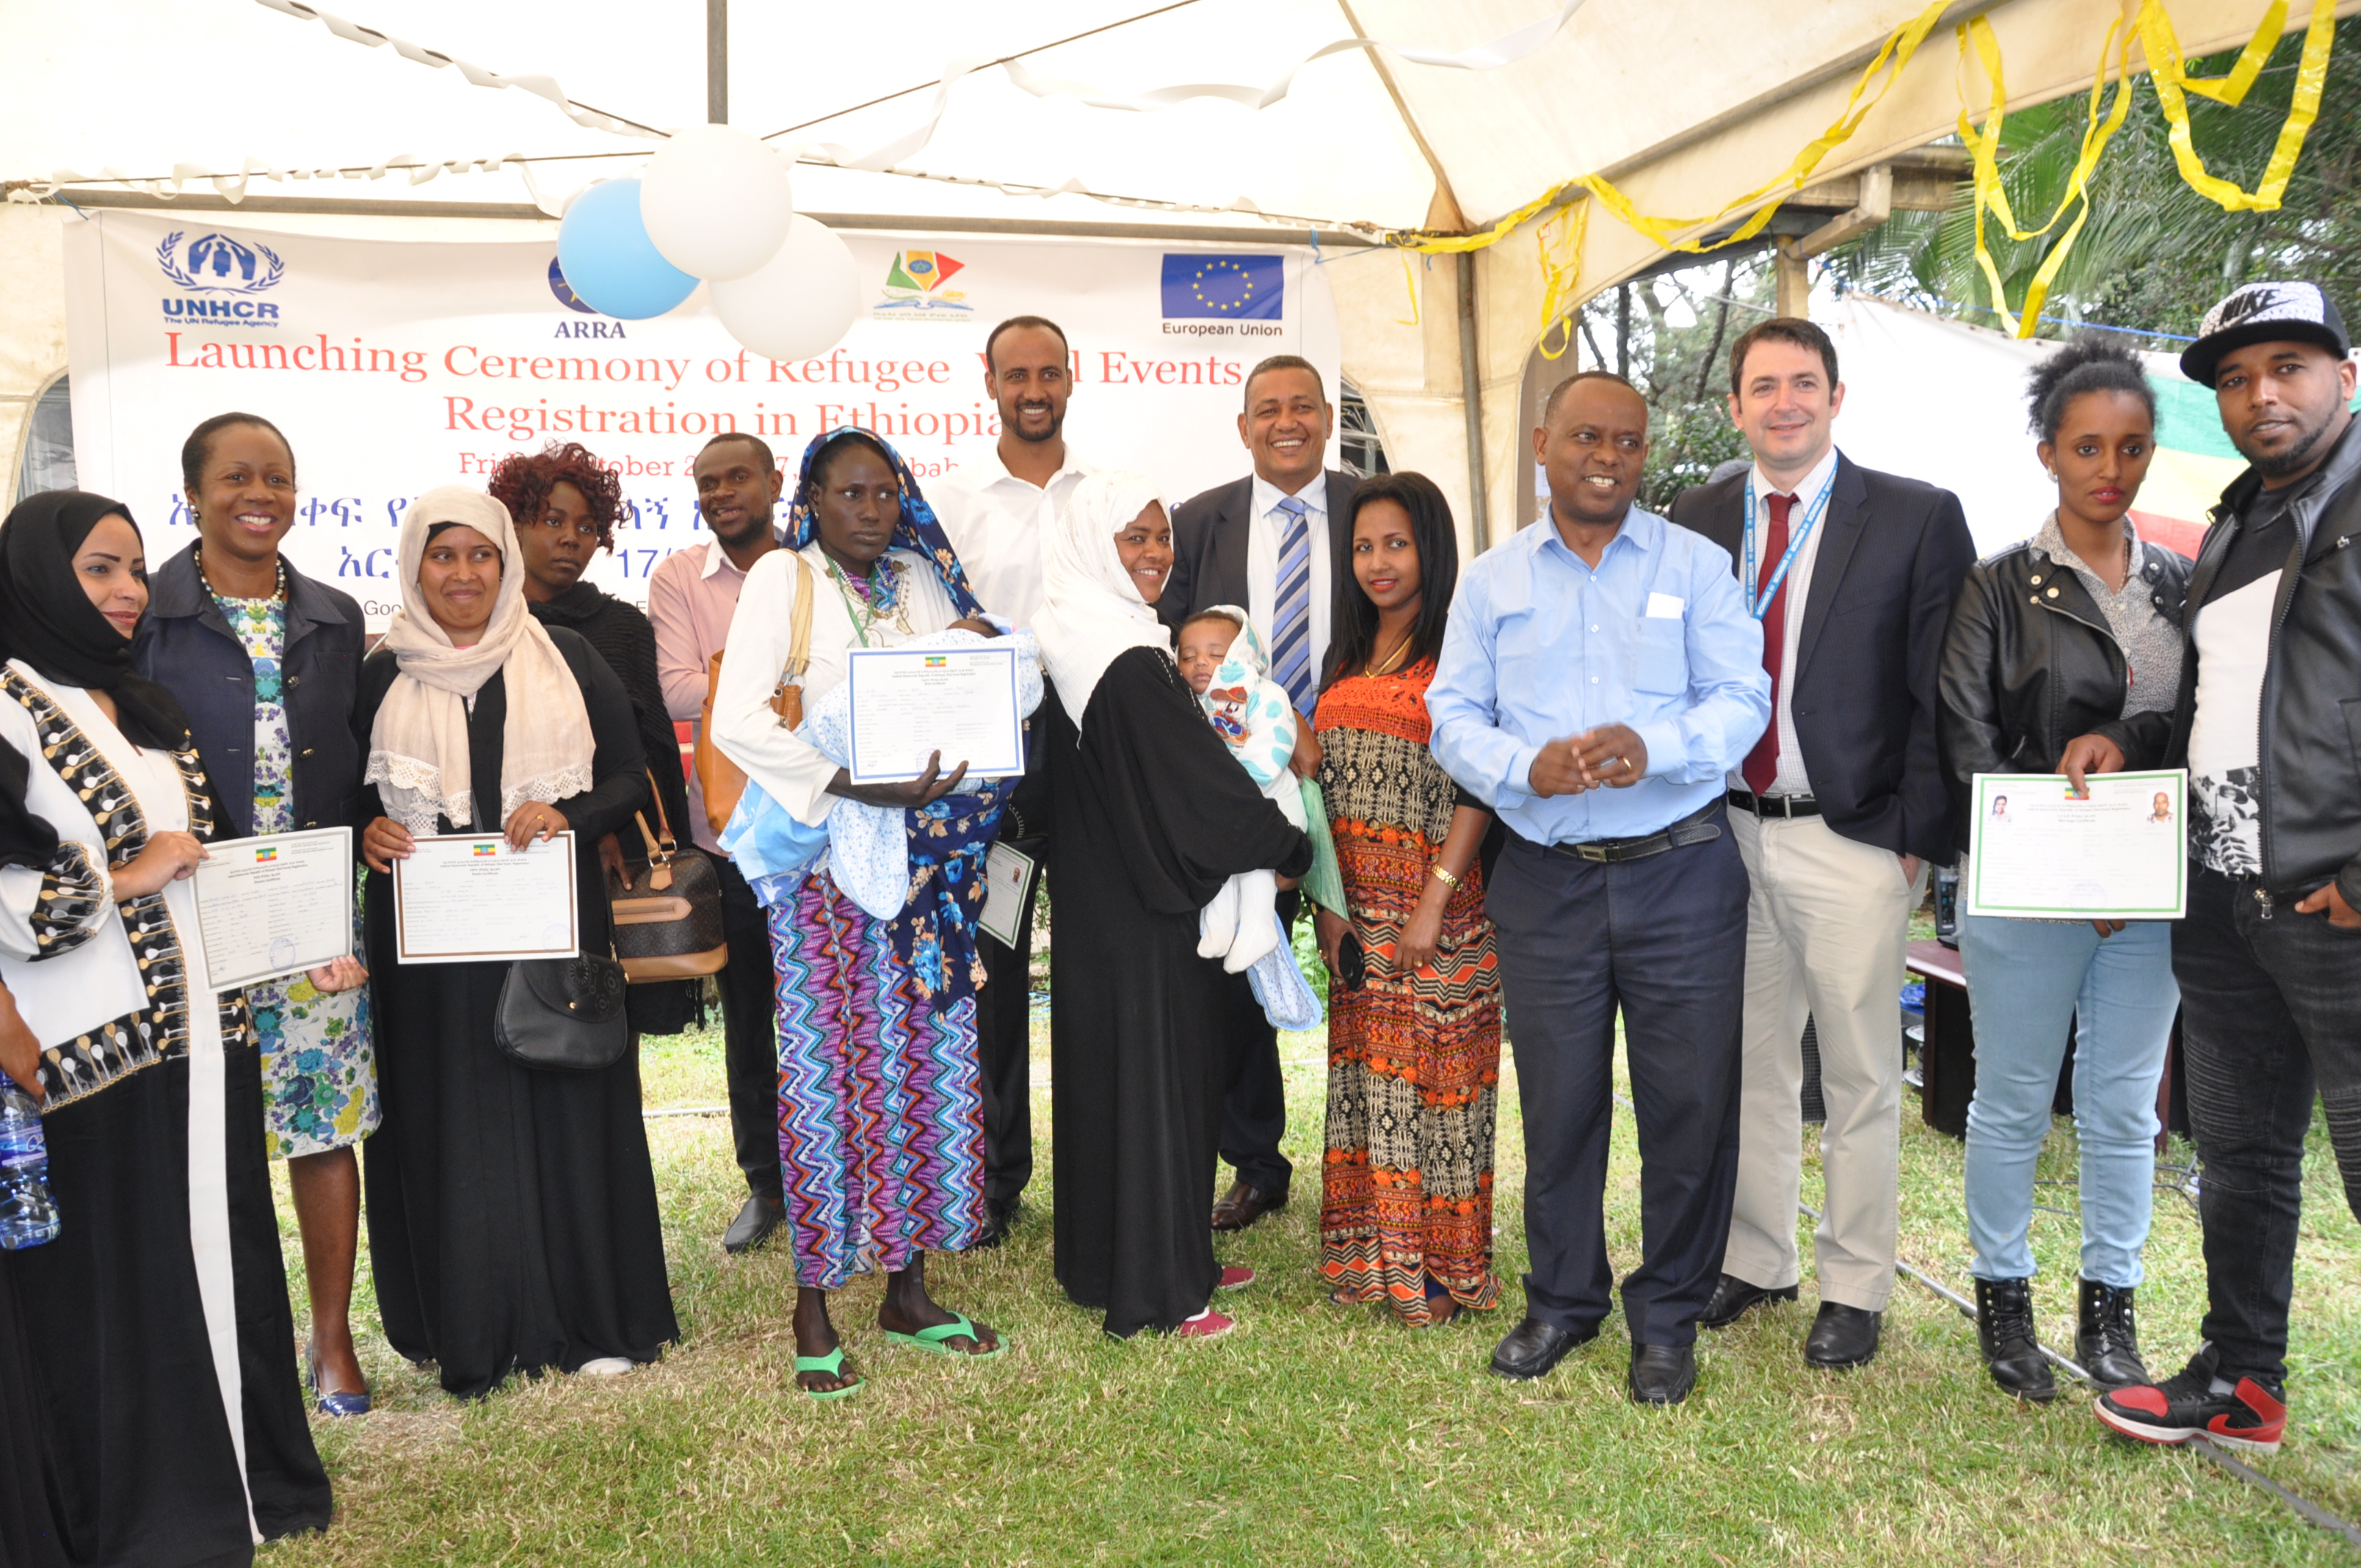 A Historic Launch of Refugee Civil Registration in Ethiopia